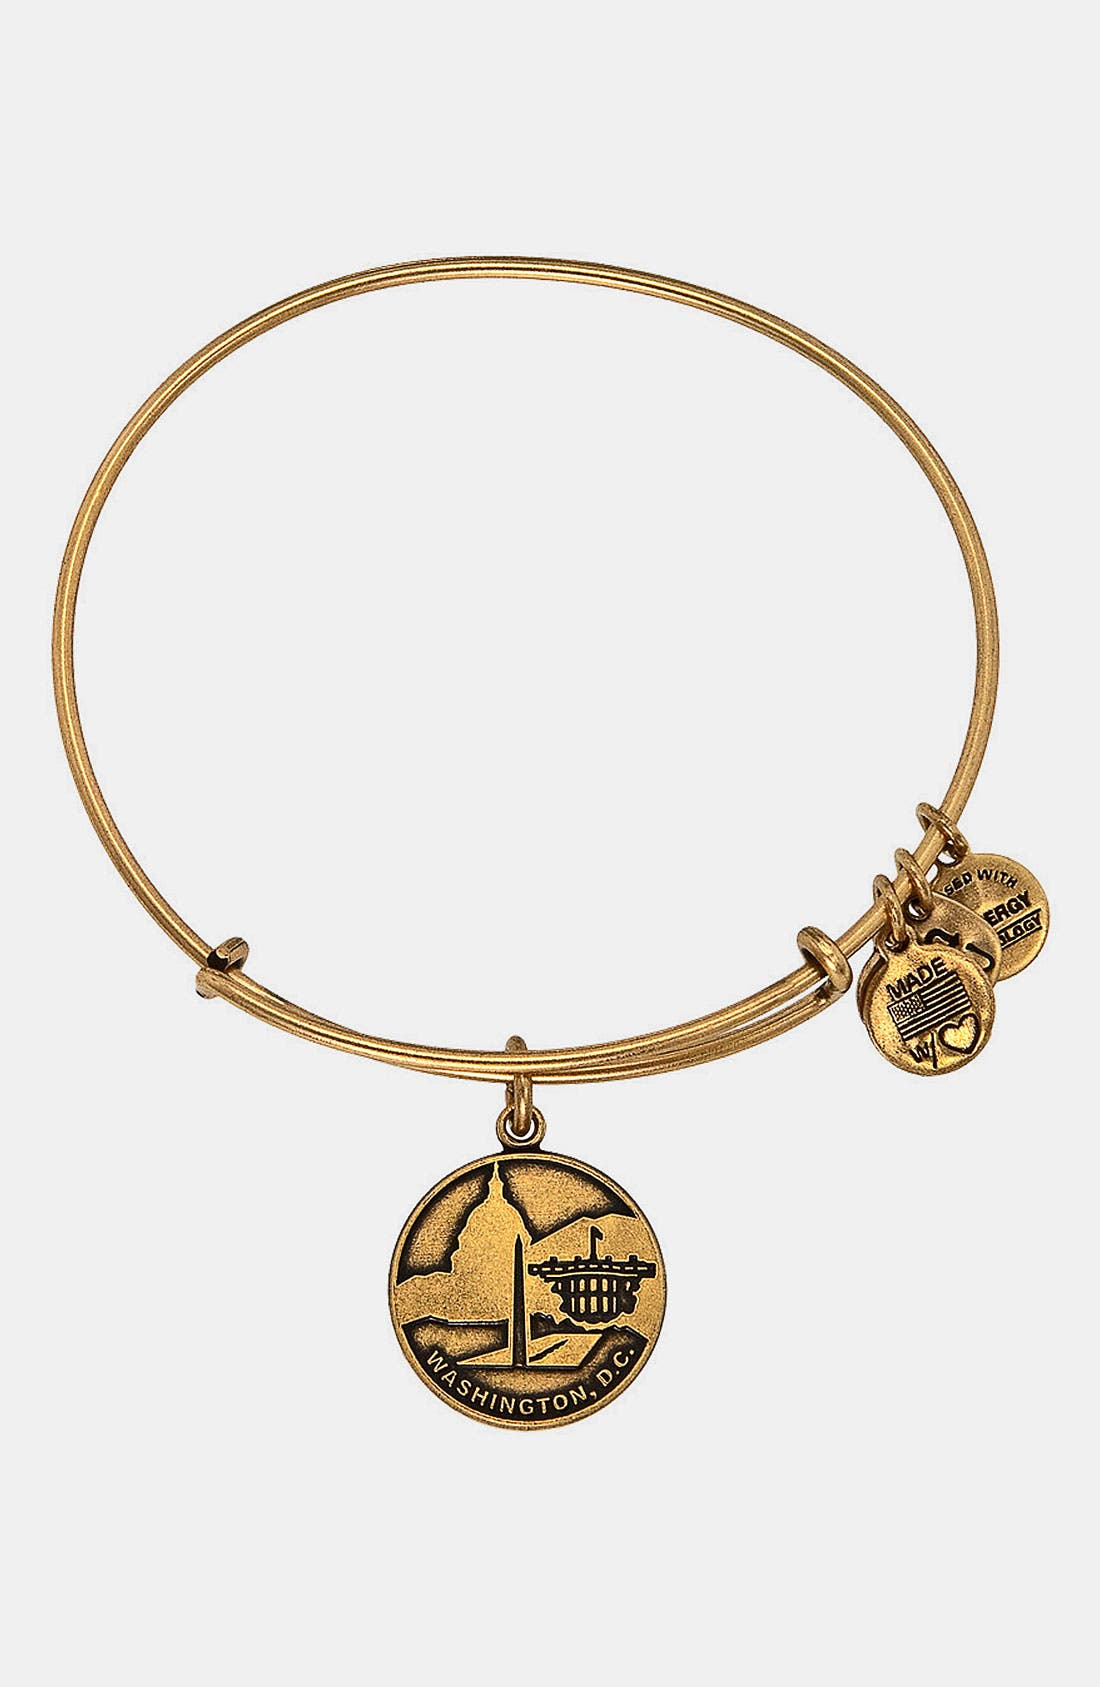 Alternate Image 1 Selected - Alex and Ani 'Washington DC' Expandable Wire Bracelet